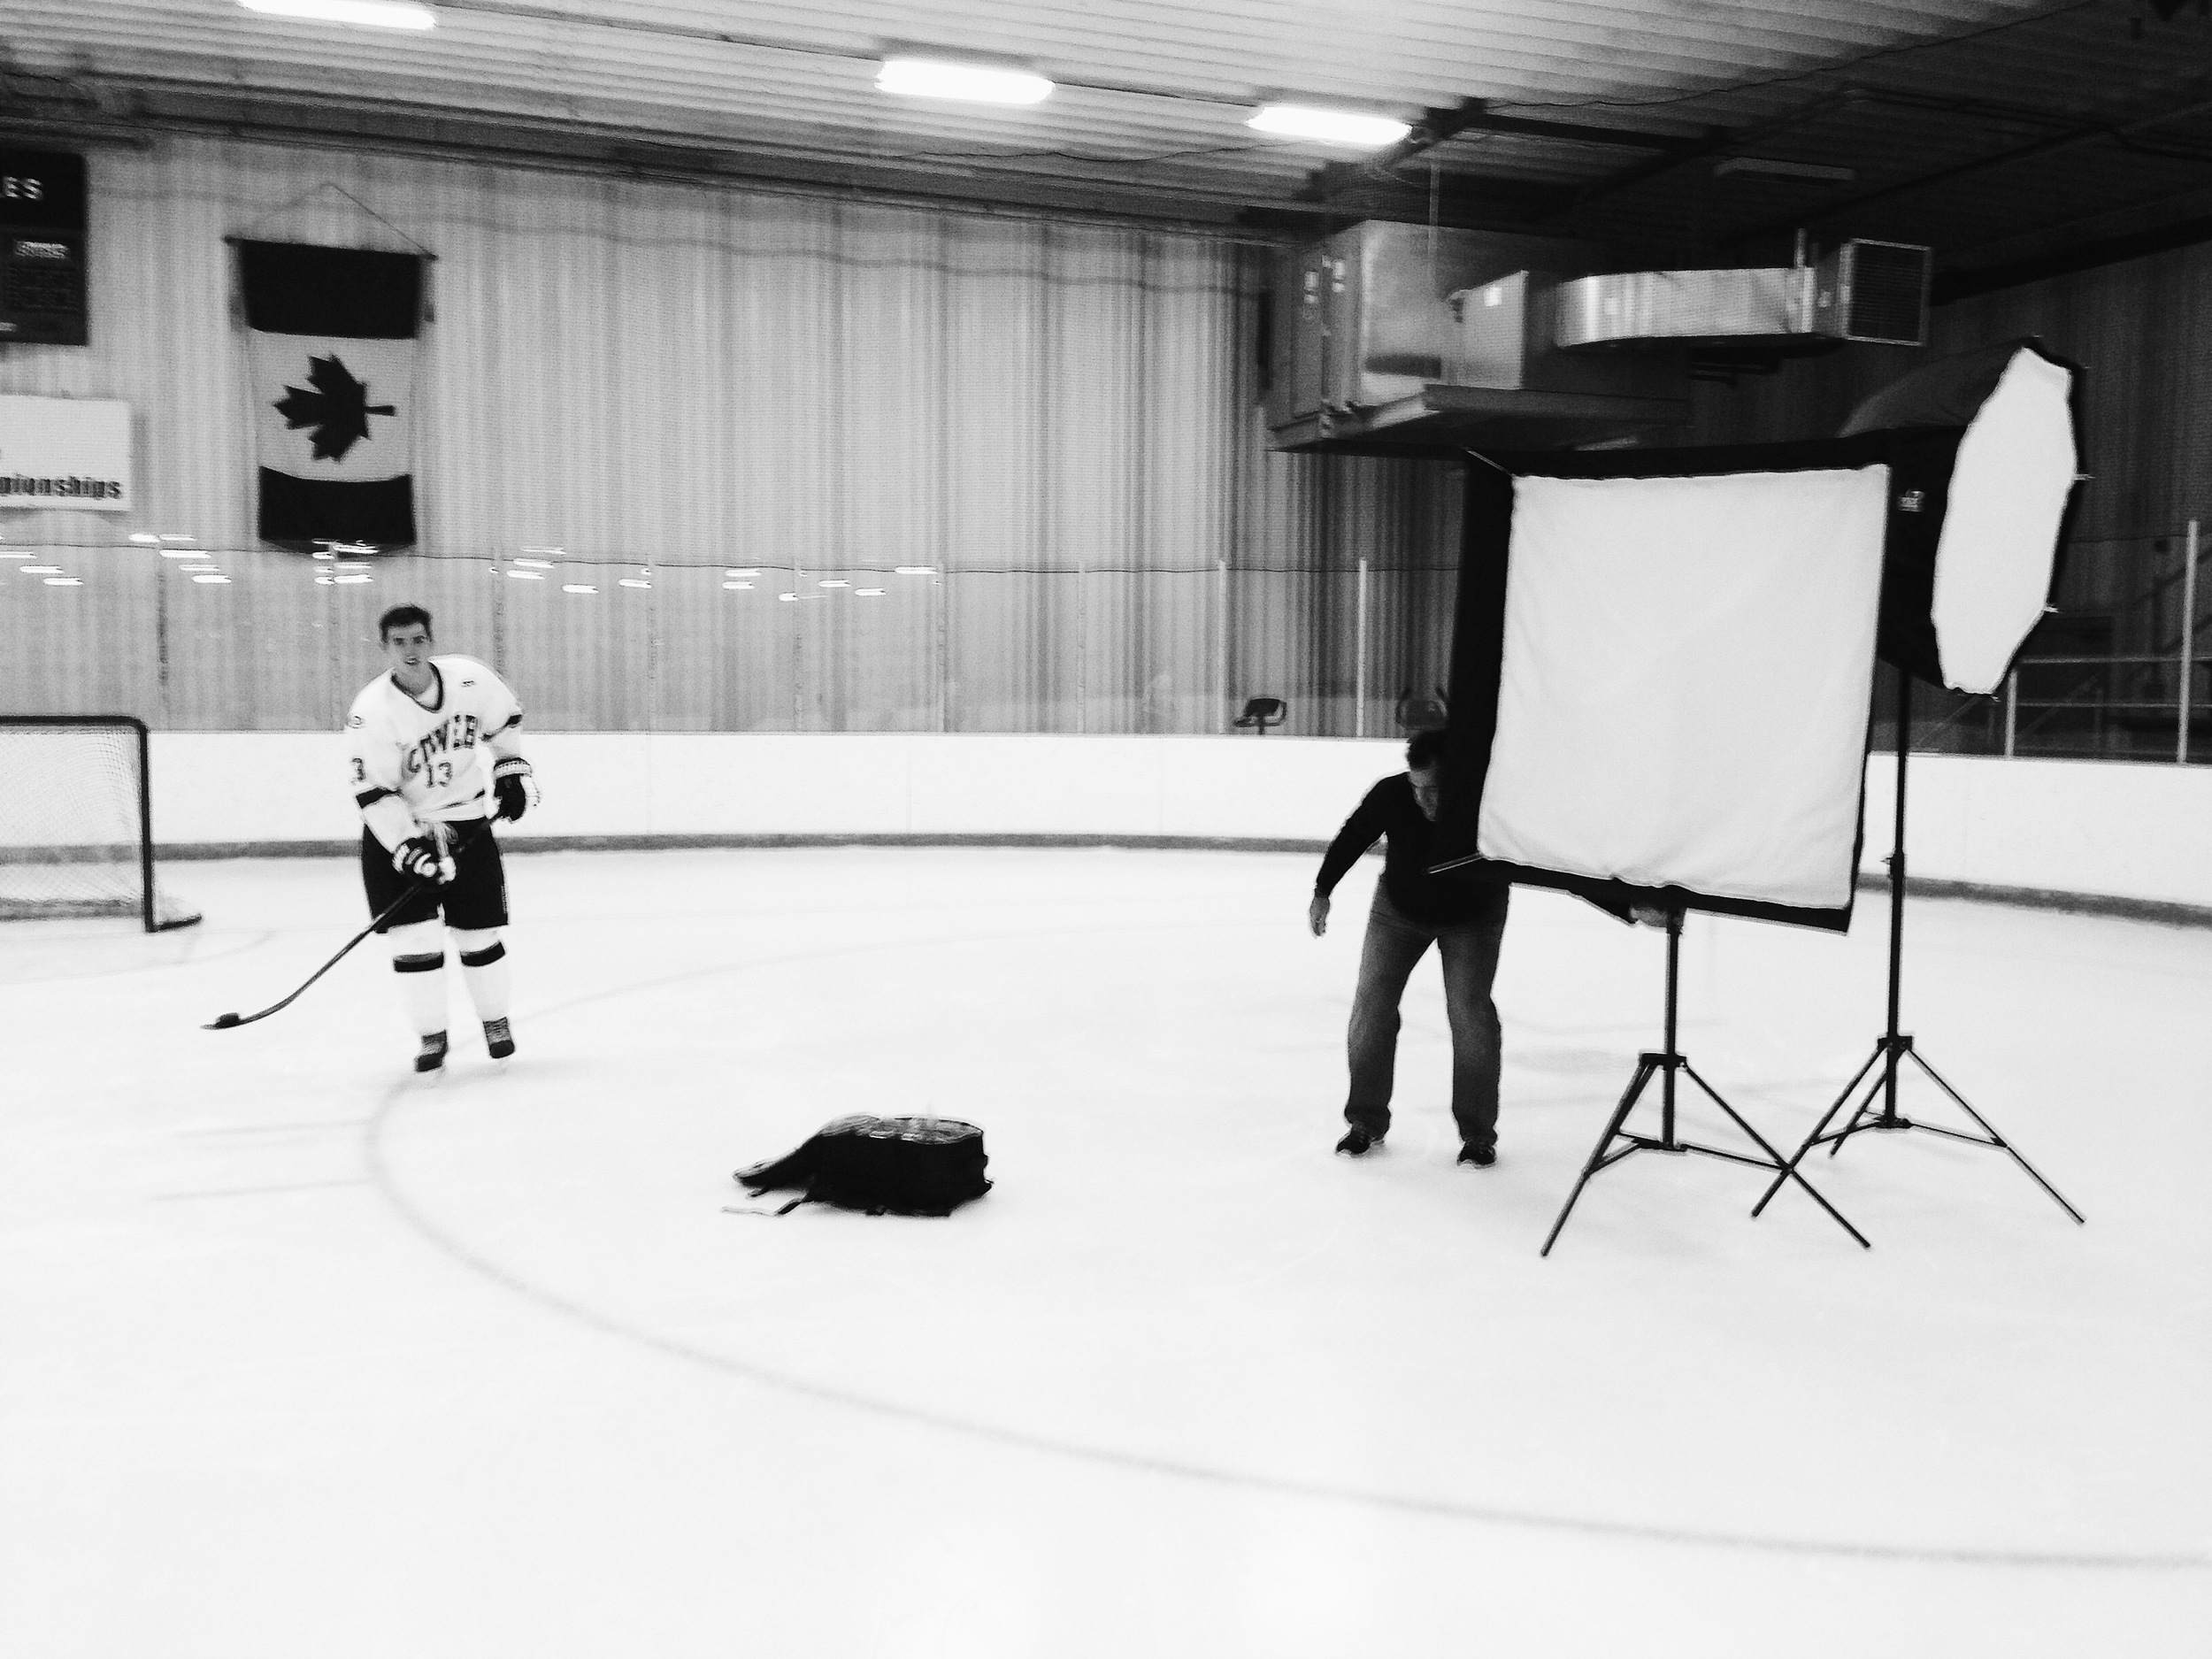 Behind the scenes Ice hockey photoshoot